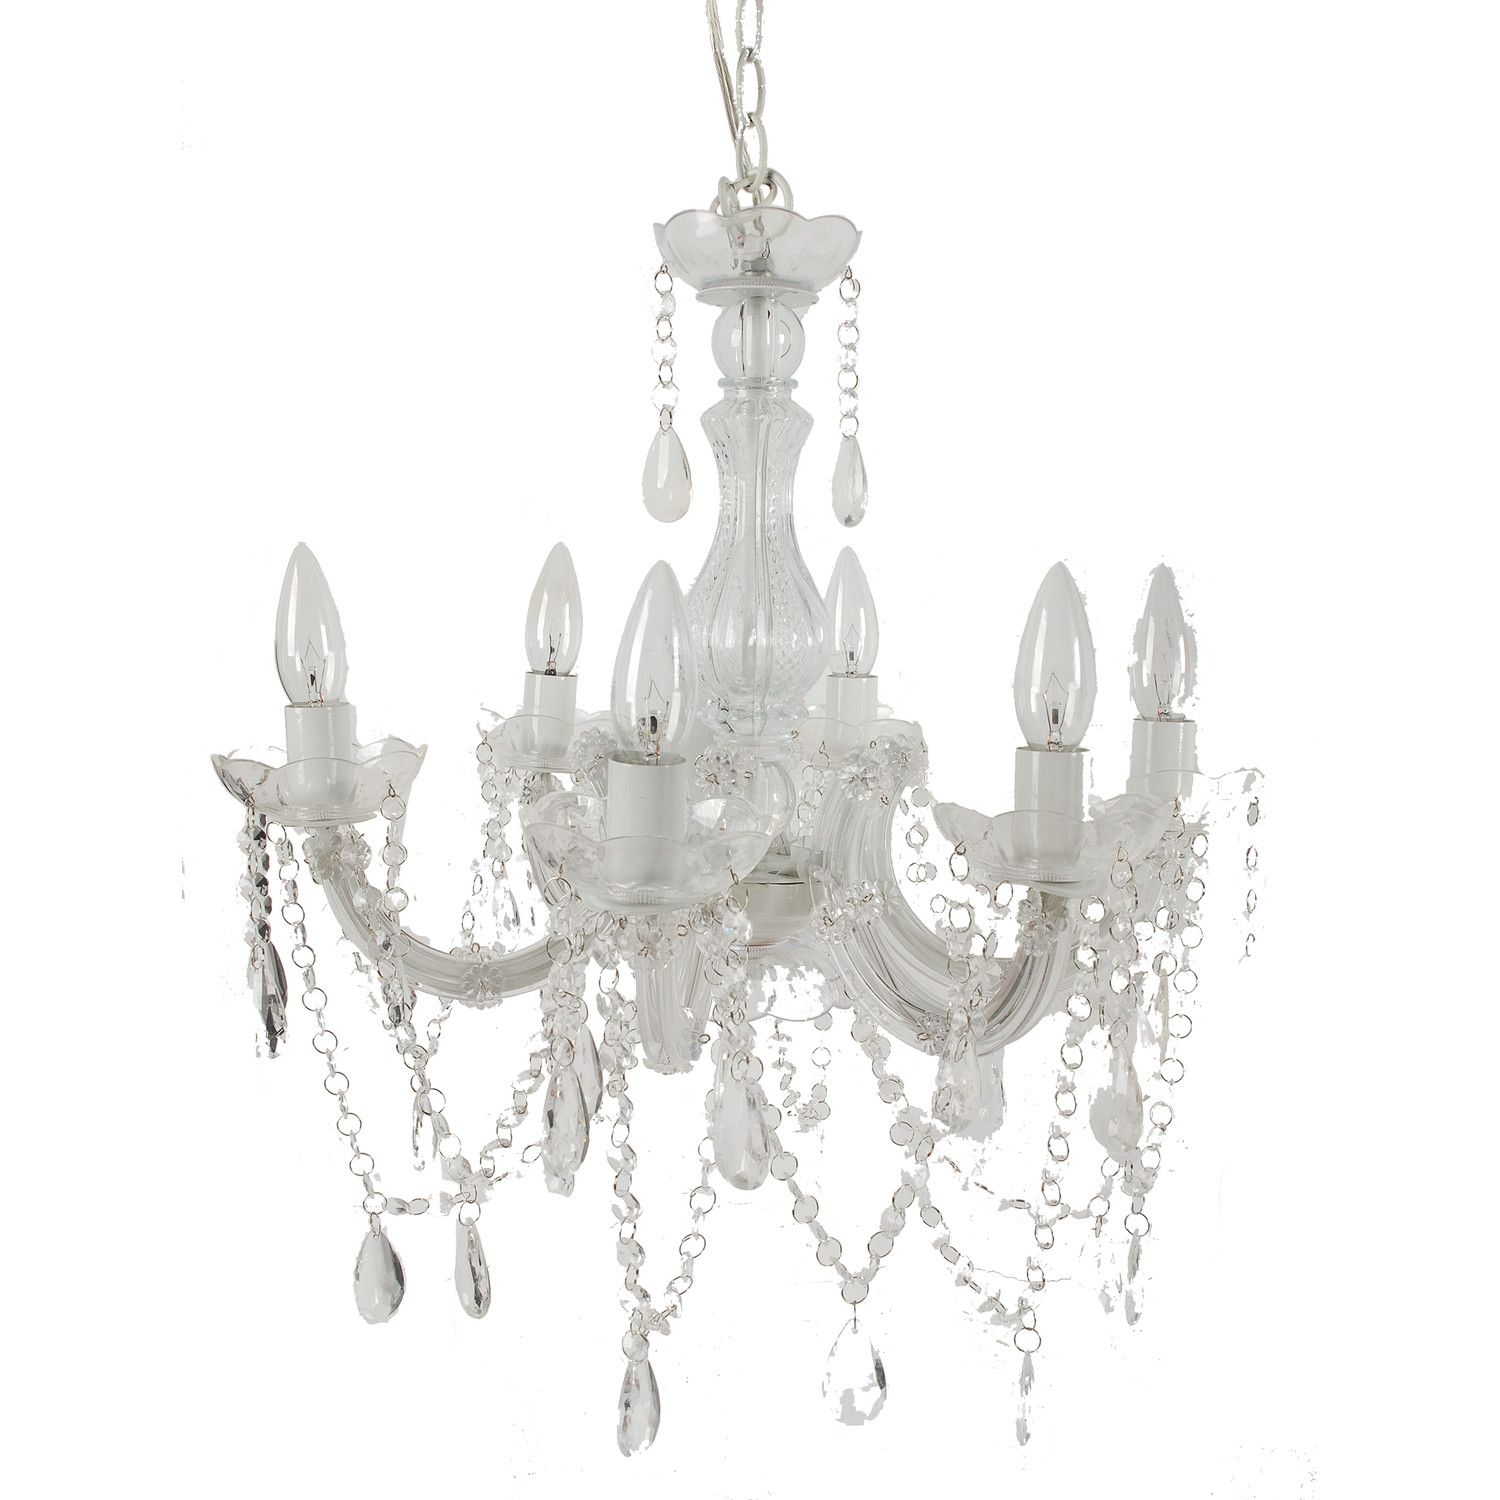 A&B Home Group Inc 6 Light Crystal Chandelier